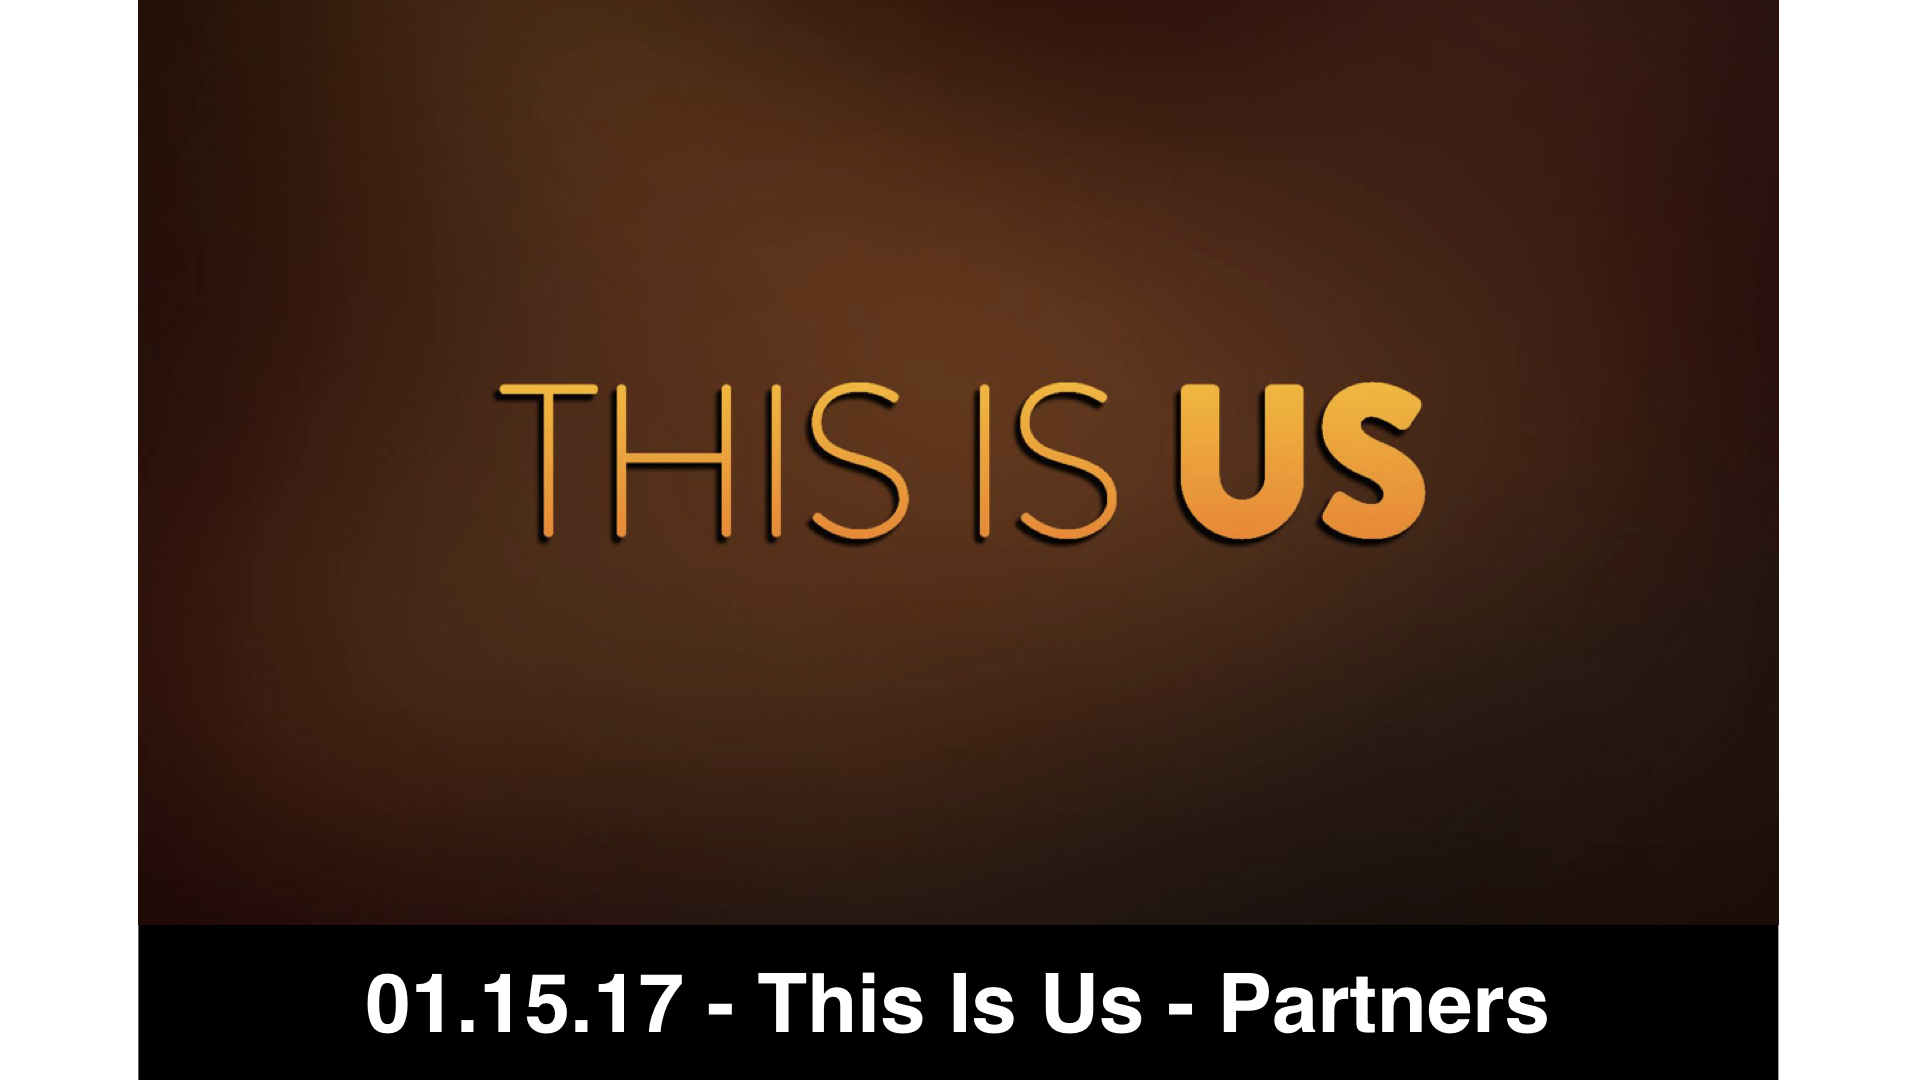 01.15.2017 - This Is Us 2 - Partners